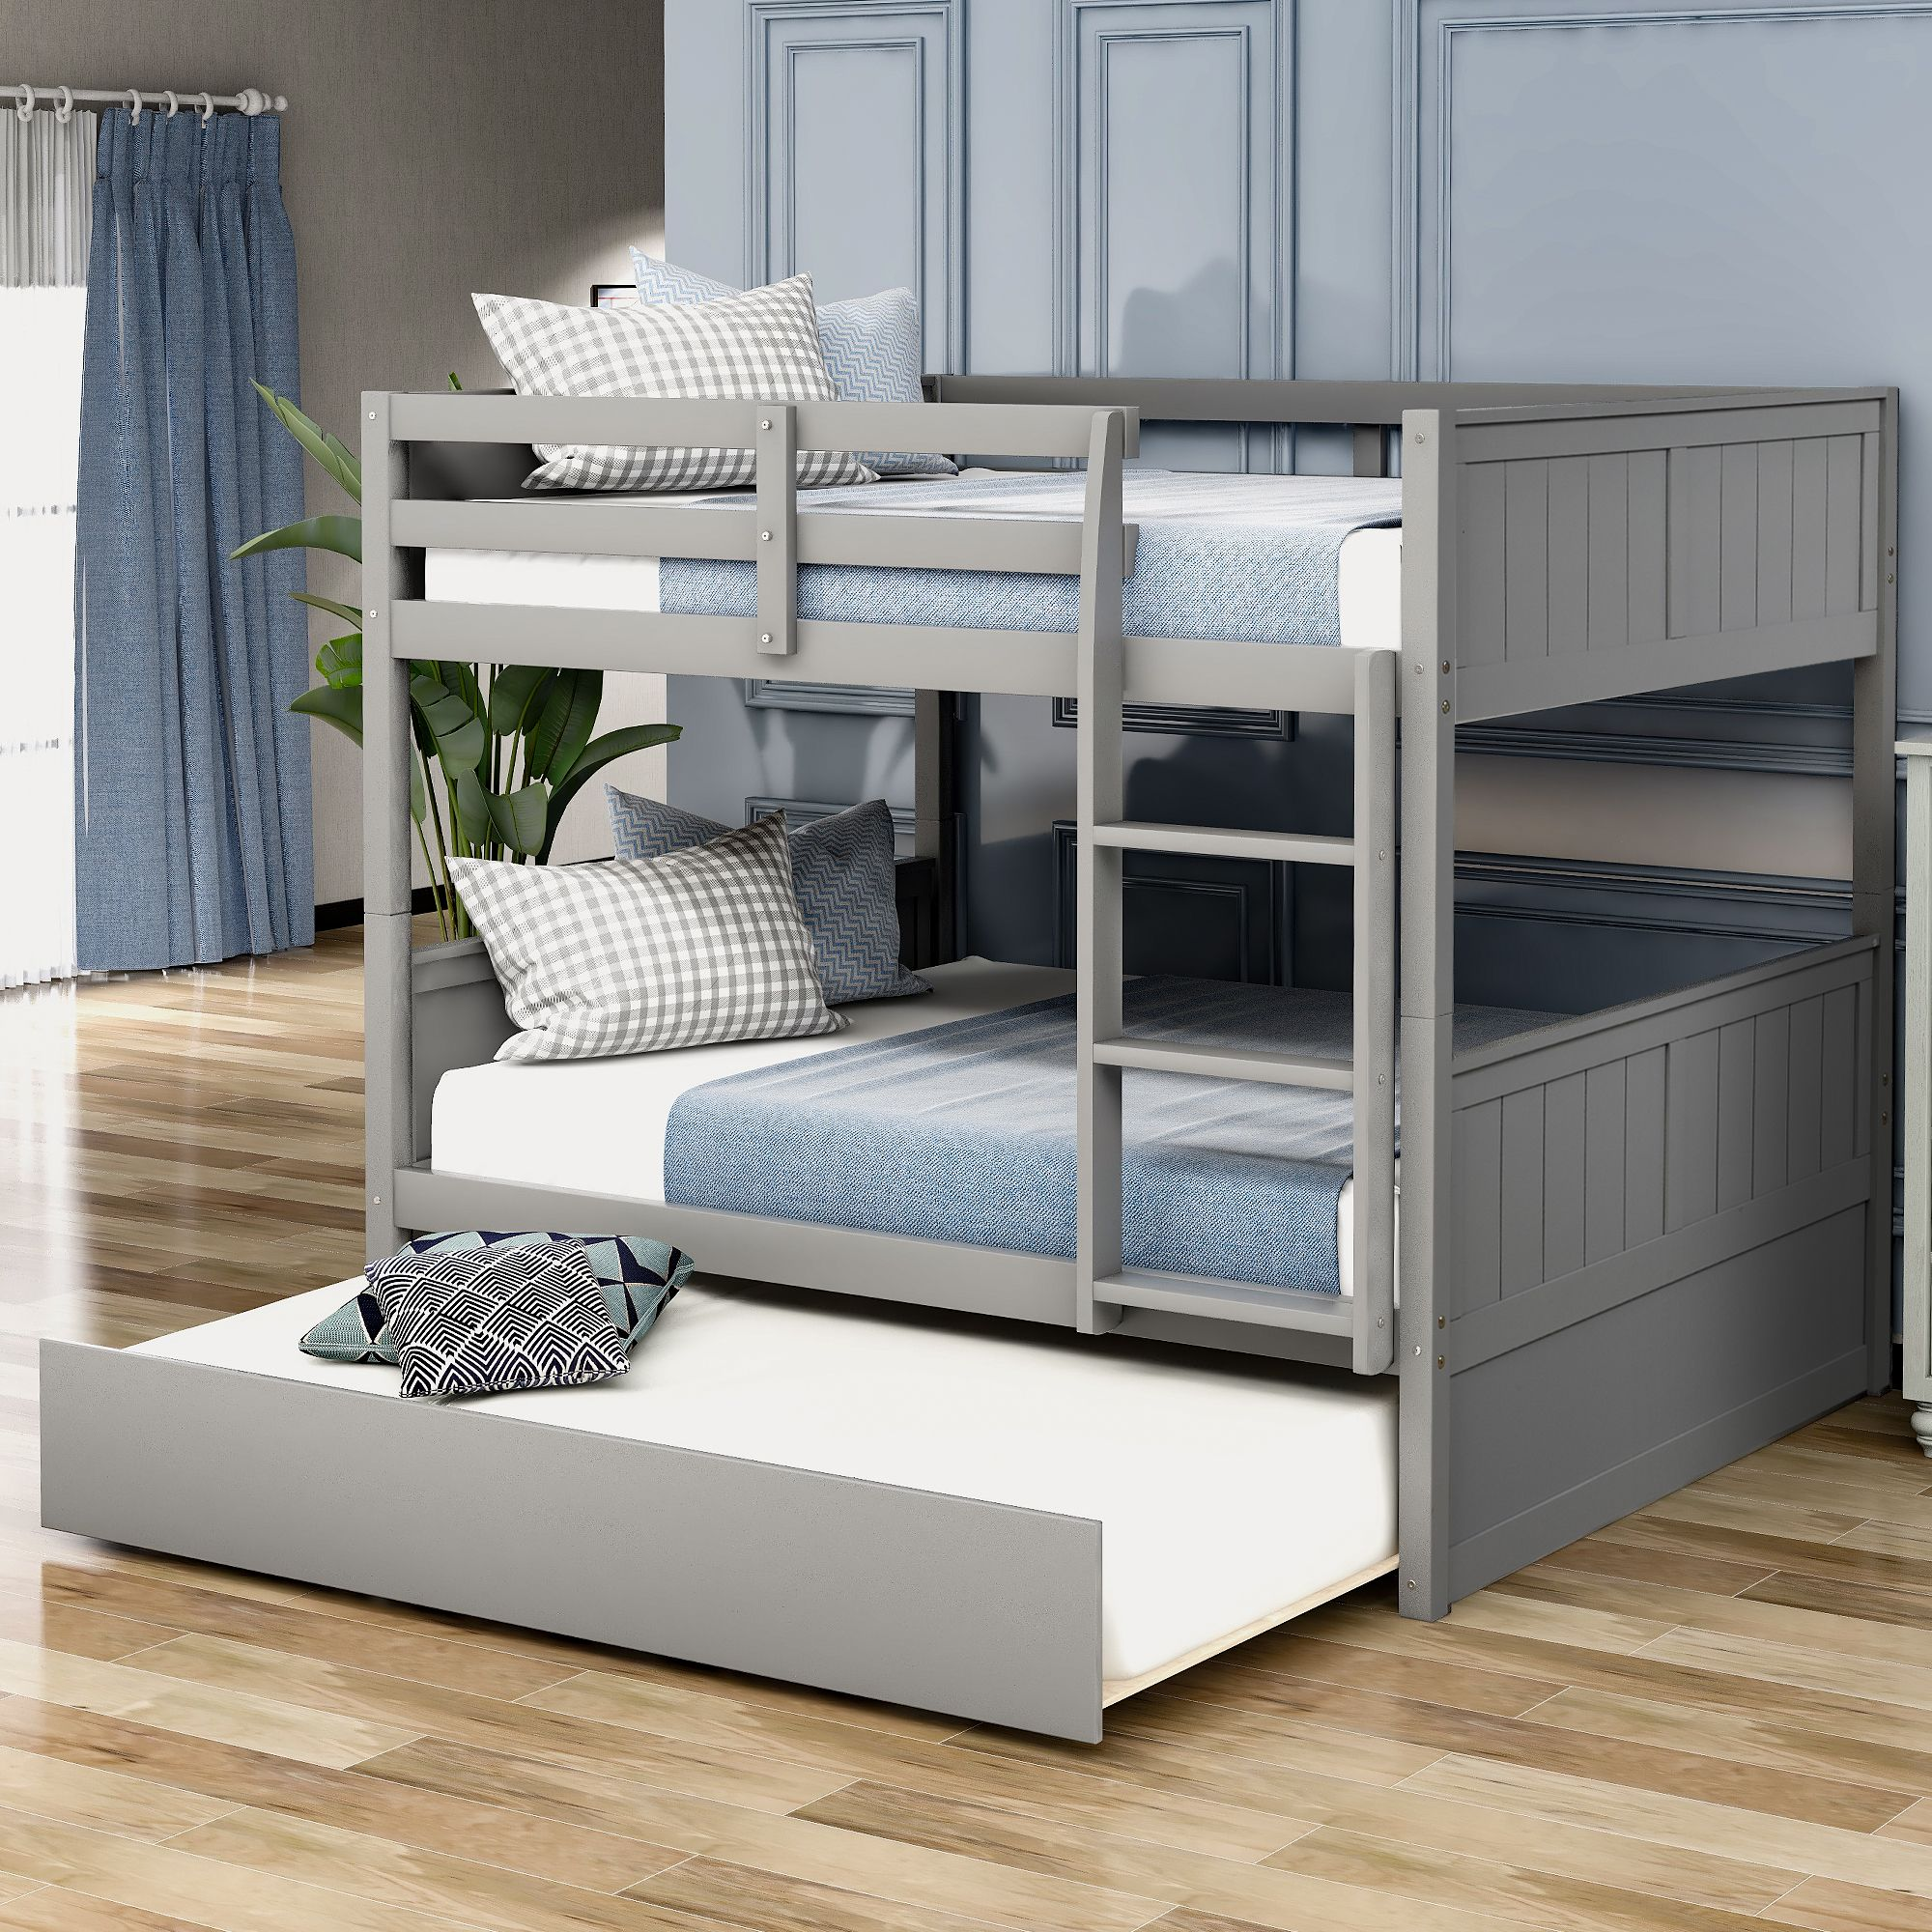 Full Over Full Bunk Bed With Twin Size Trundle In 2021 Bunk Bed With Trundle Full Bunk Beds Bunk Beds Full over full with trundle